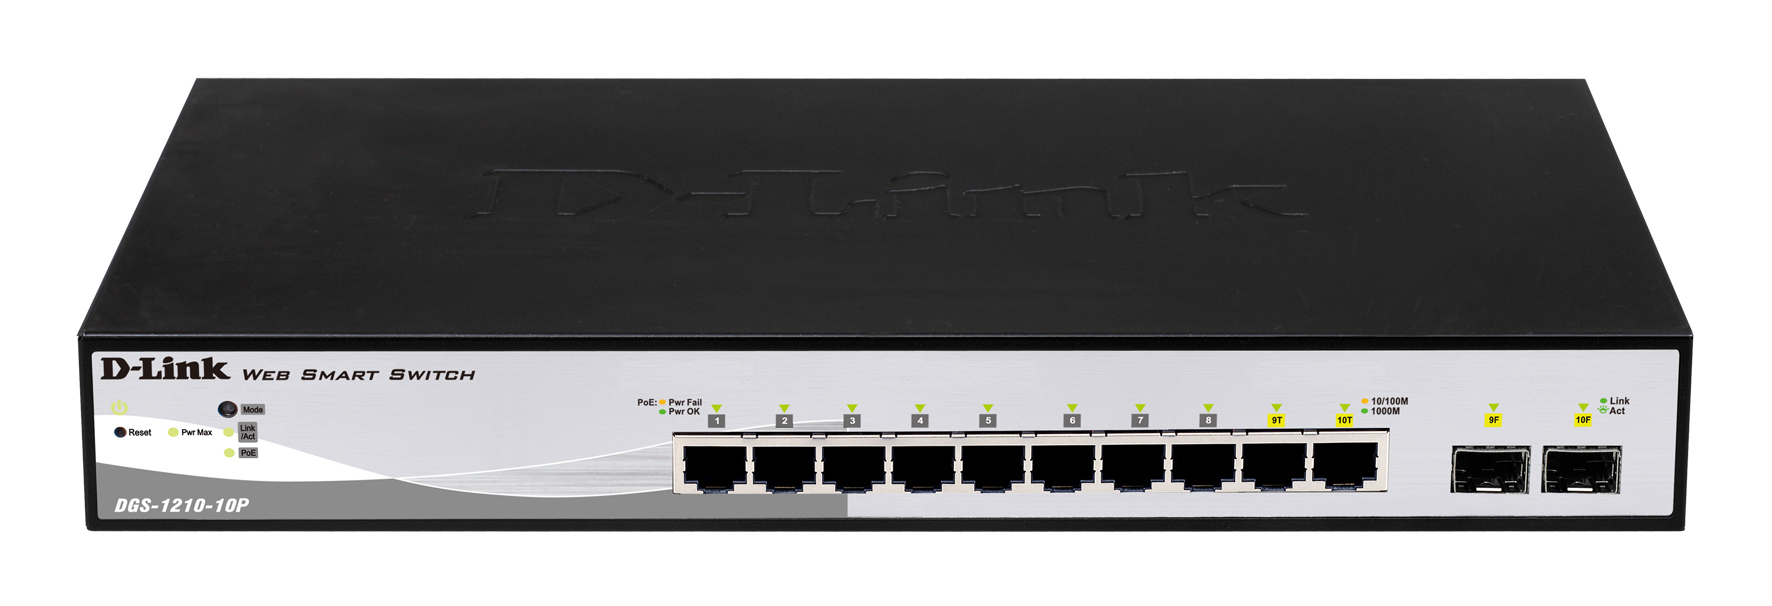 D-LINK DGS-1210-10P MANAGED POWER OVER ETHERNET (POE) 1U NETWORK SWITCH